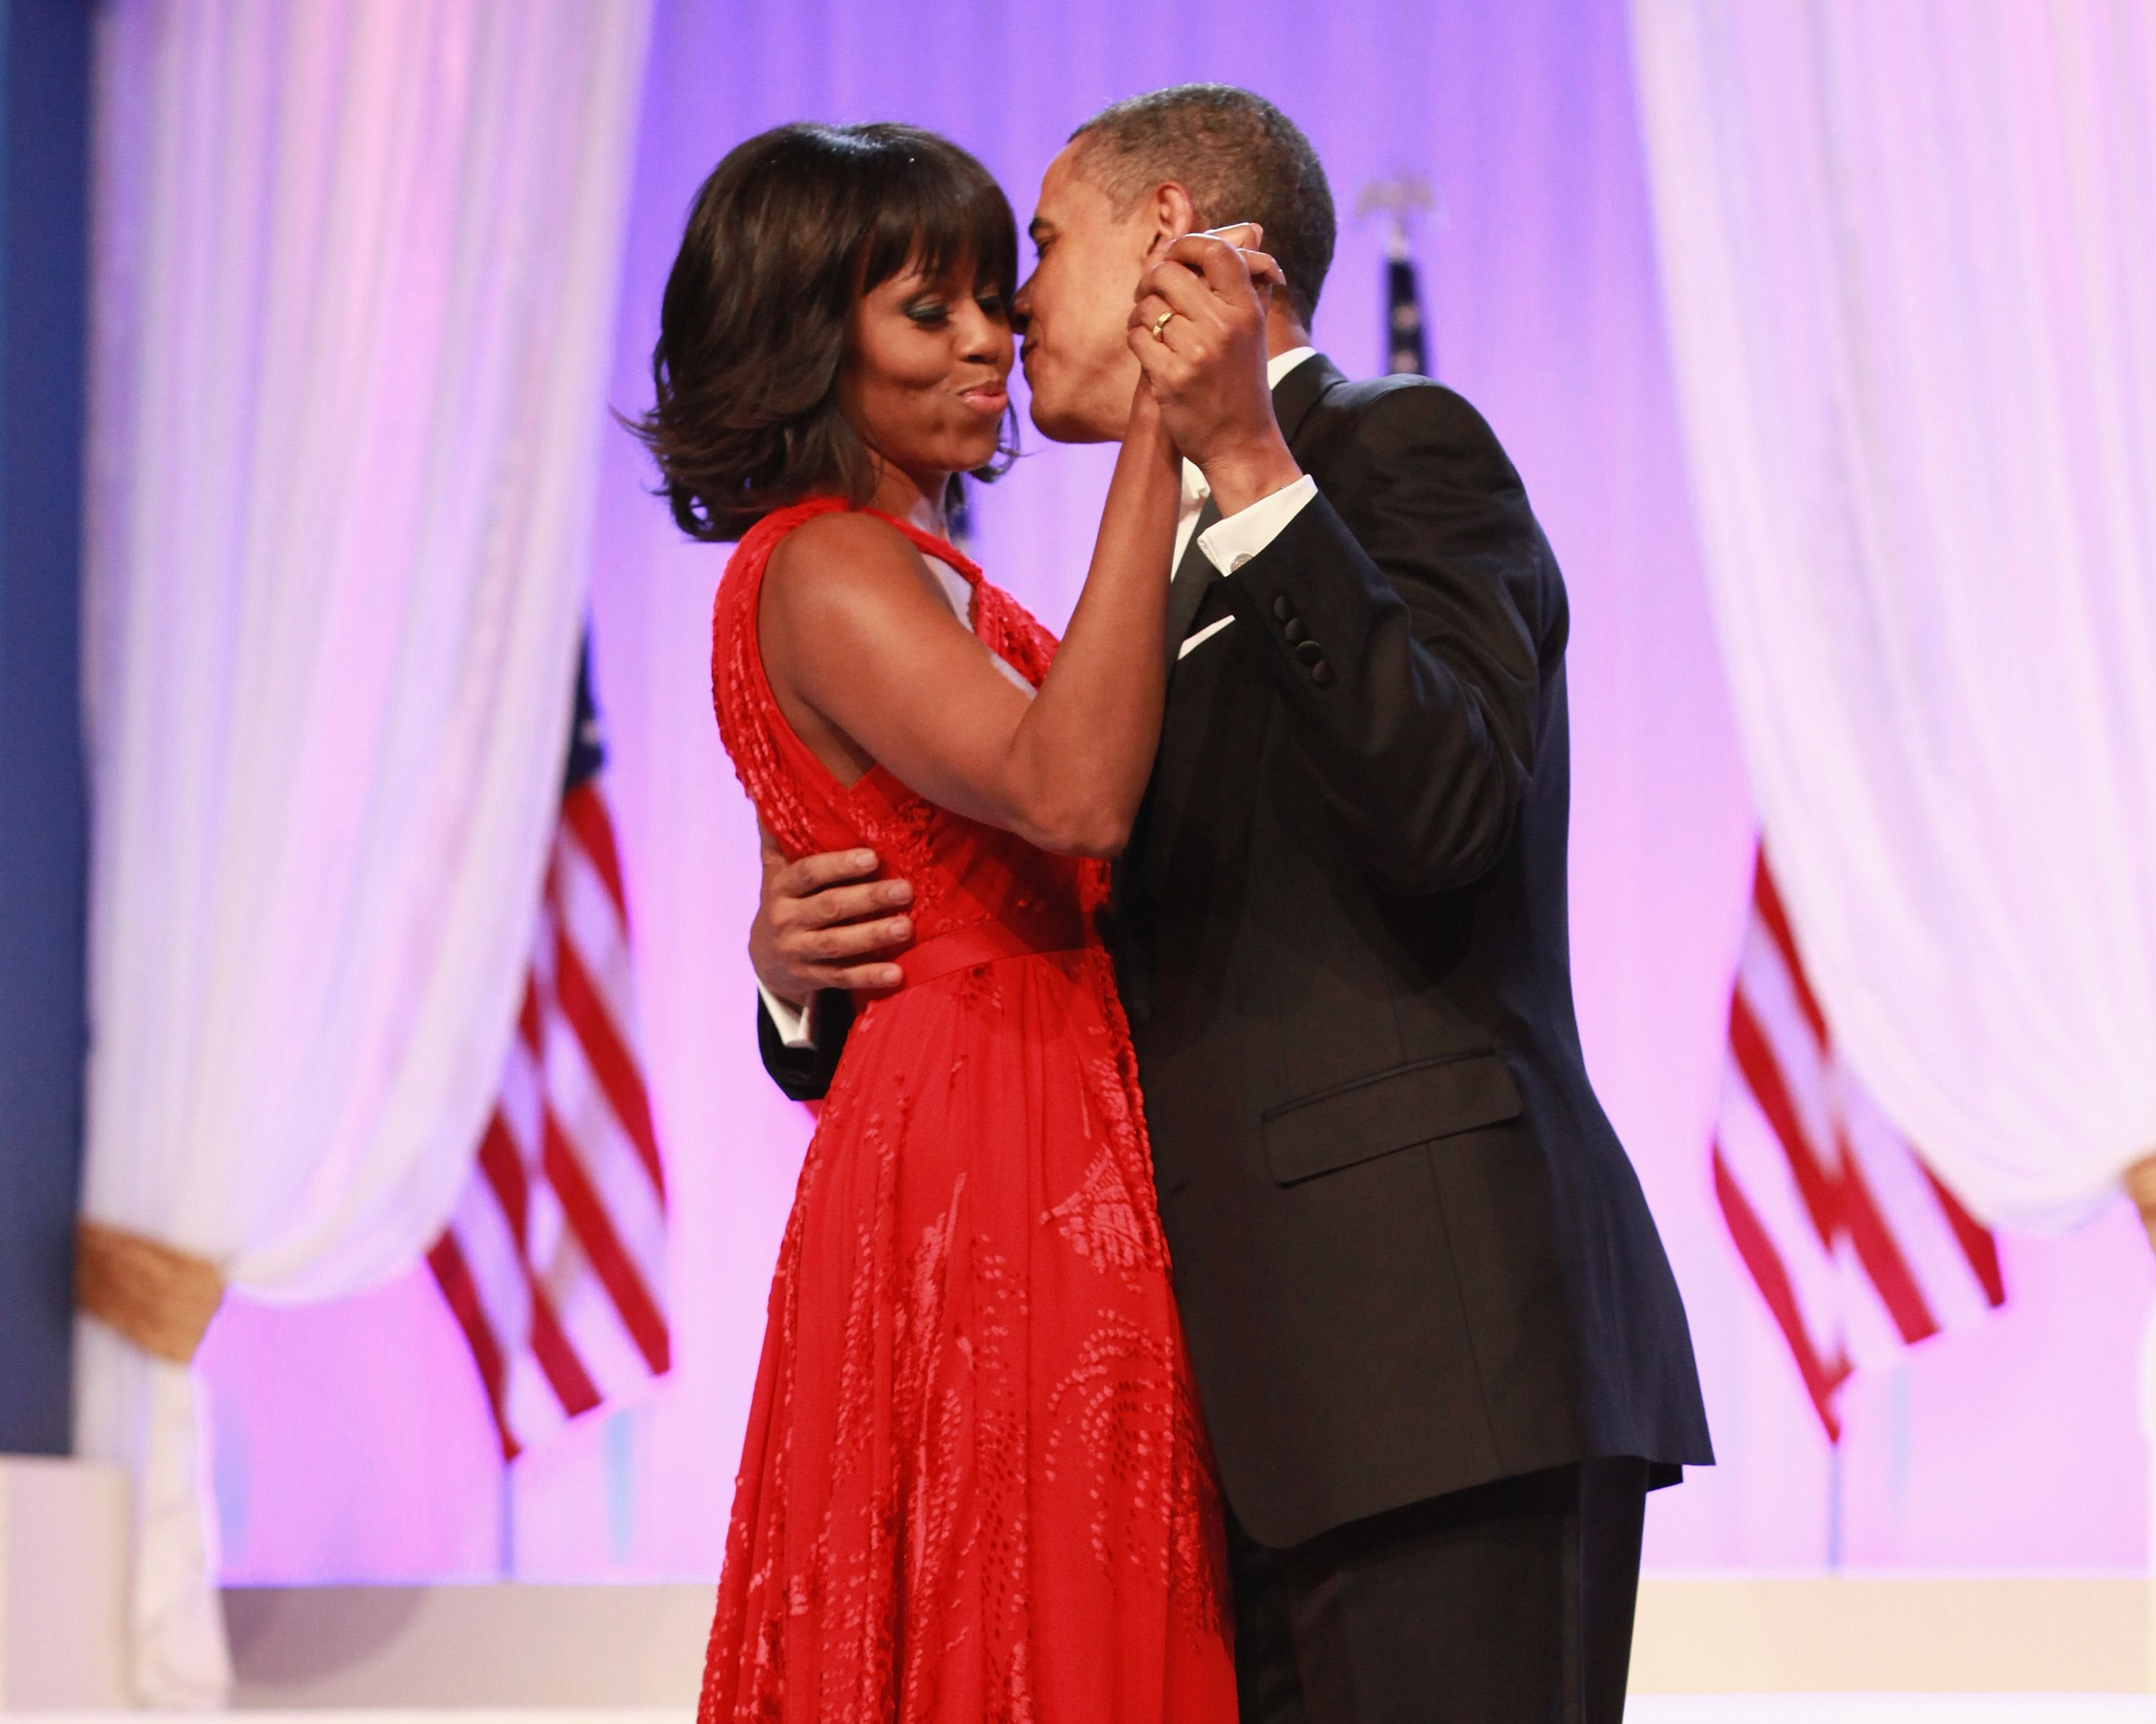 First Lady Michelle Obama and President Barack Obama at the Inaugural Ball on January 21, 2013, in Washington, United States | Photo: Taylor Hill/WireImage/Getty Images